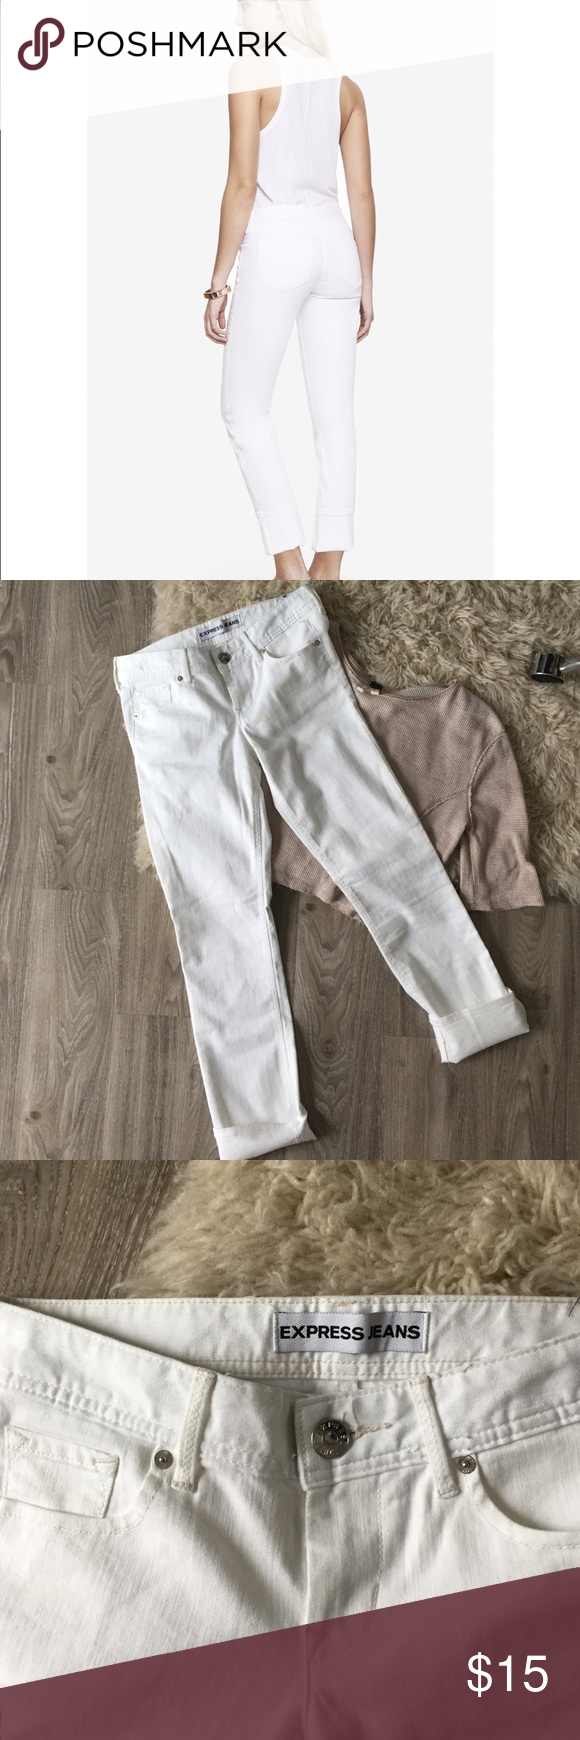 Express White Skinny Jeans Like new white jeans by Express in low-rise Stella cut. Featuring a cute wide cuff but can also be folded down. Express Jeans Skinny